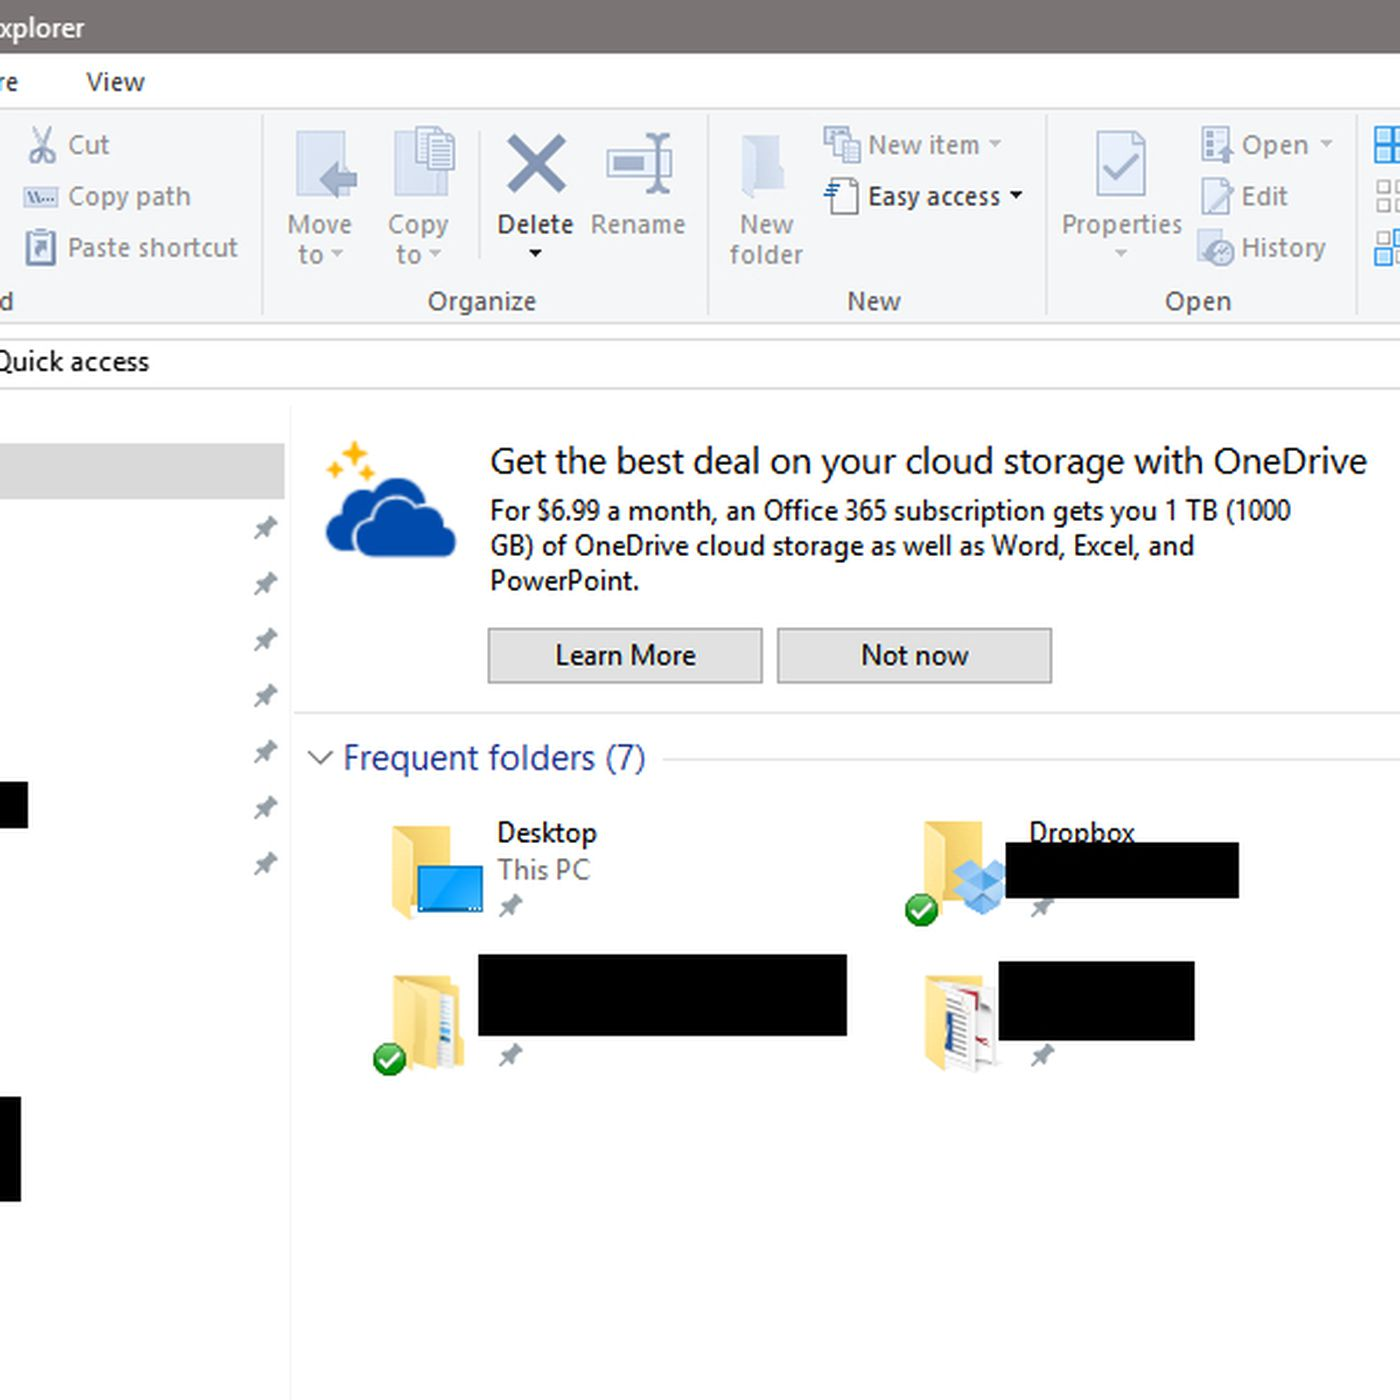 Microsoft is putting OneDrive ads in Windows 10's File